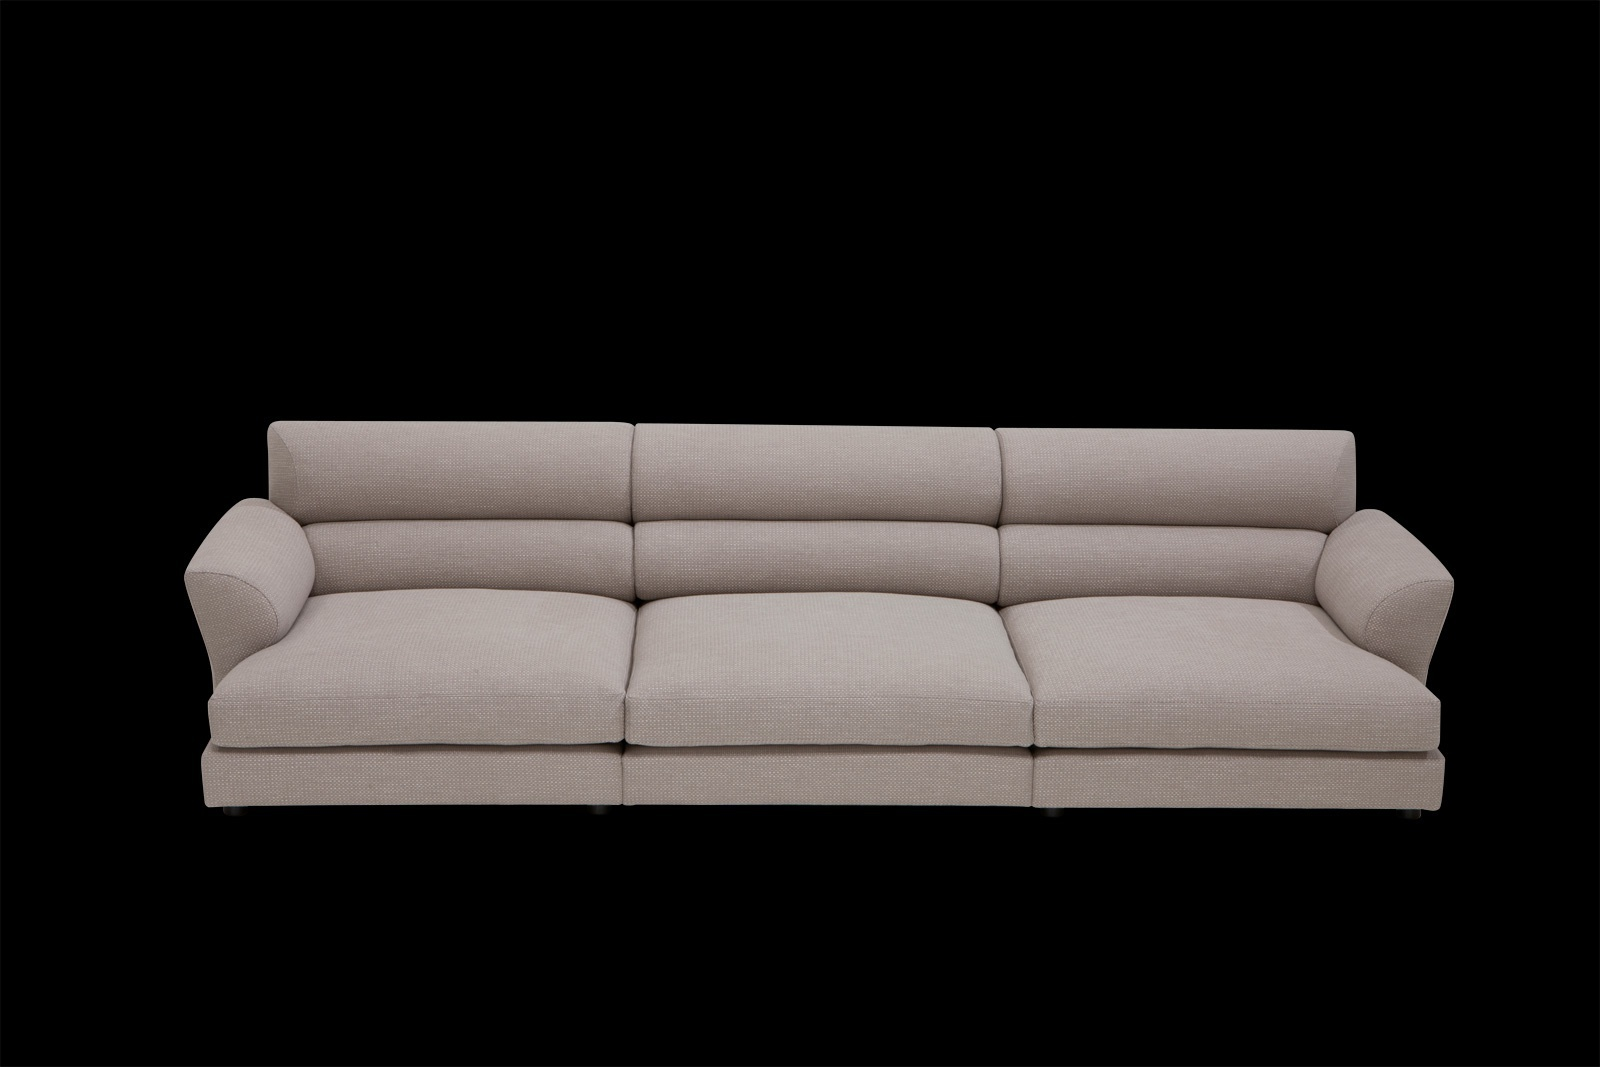 Three Seat Sofa Imperial Lounge Low Lying Il Loft Luxury